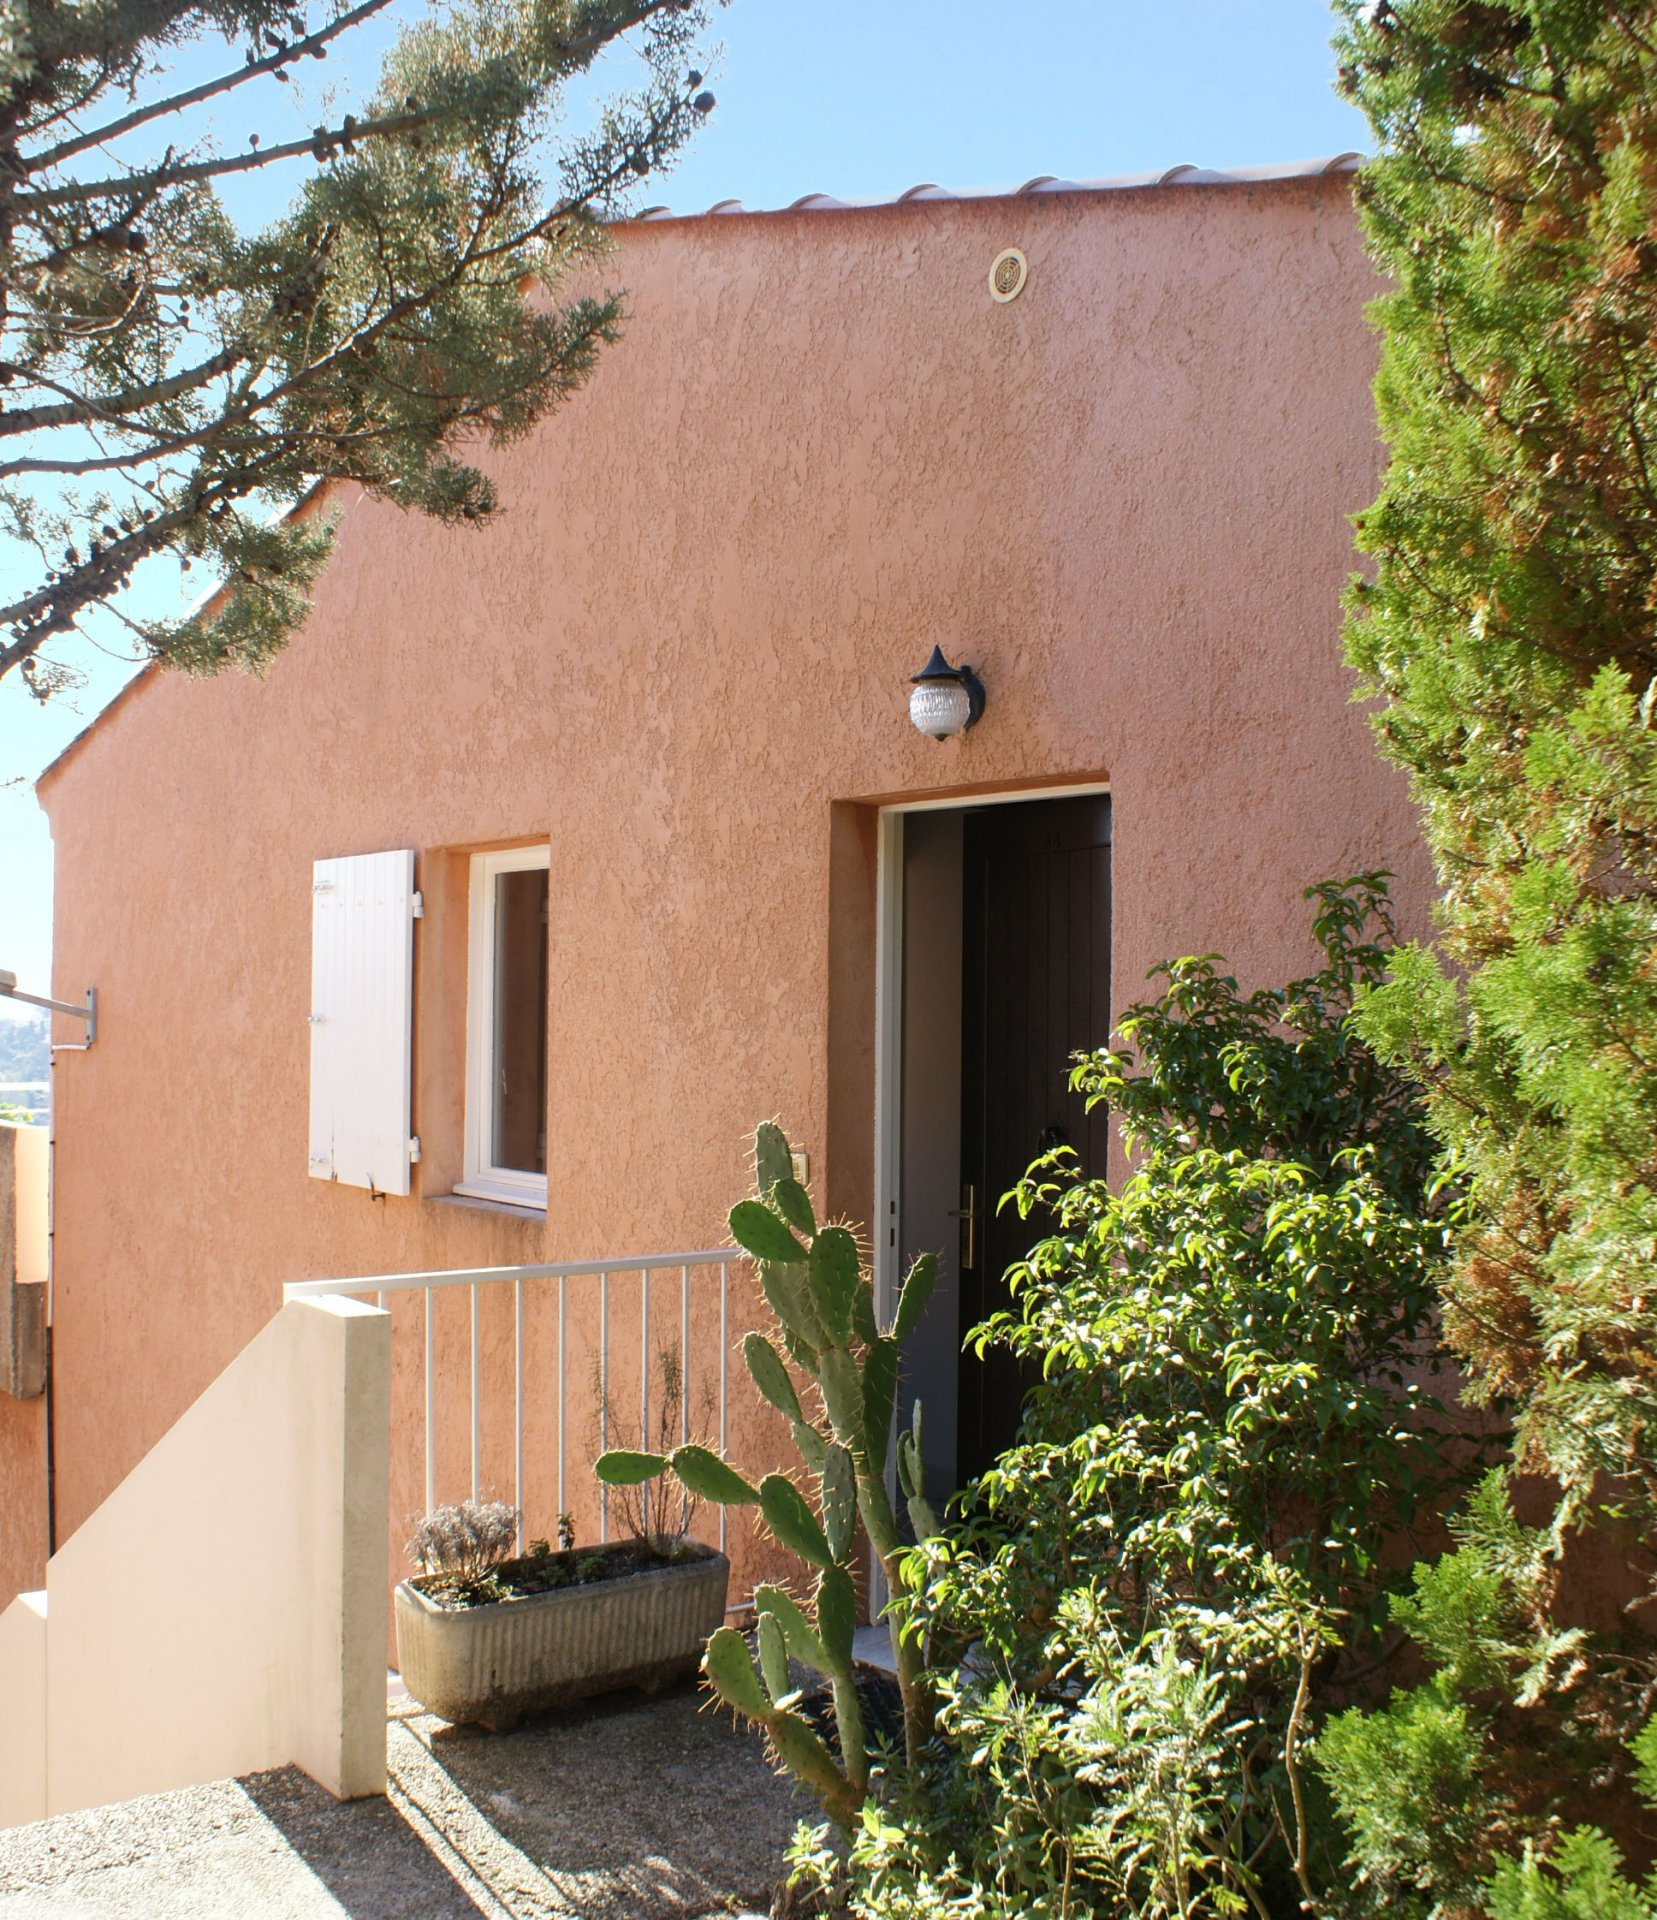 1 bedroom (2-4 sleeps), terrace with marvellous sea view  * MM 44 *